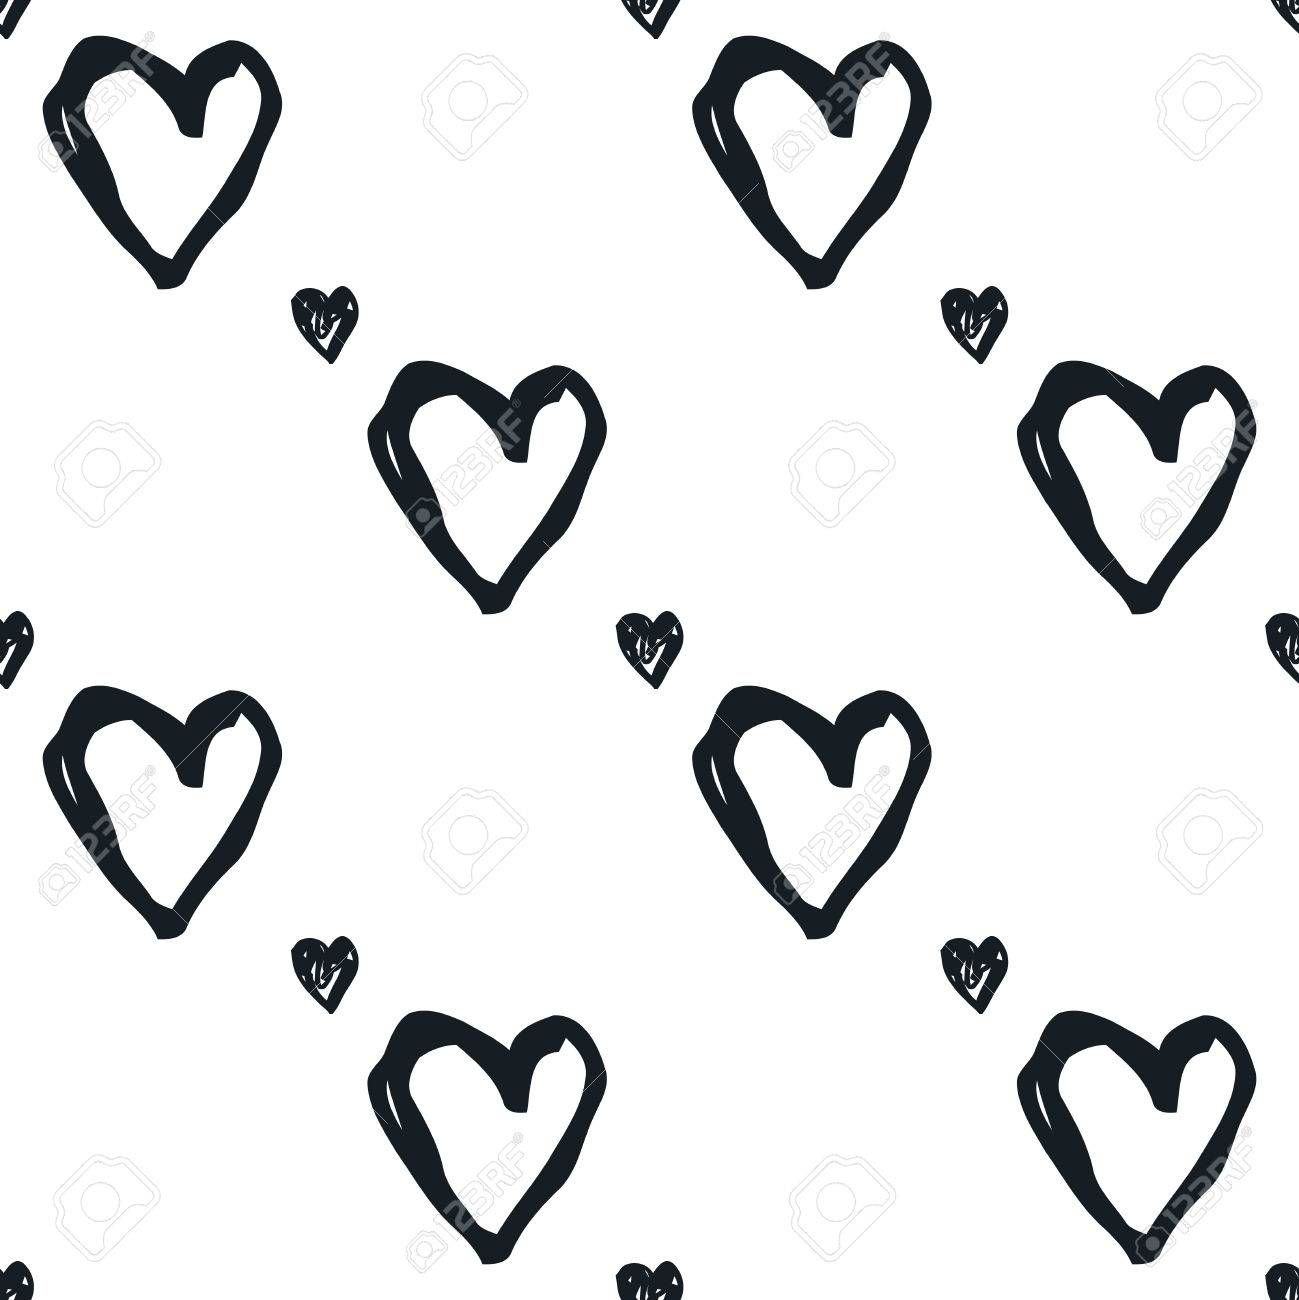 Doodle Seamless Pattern With Hearts Black And White Heart Vector Royalty Free Cliparts Vectors And Stock Illustration Image 57829170